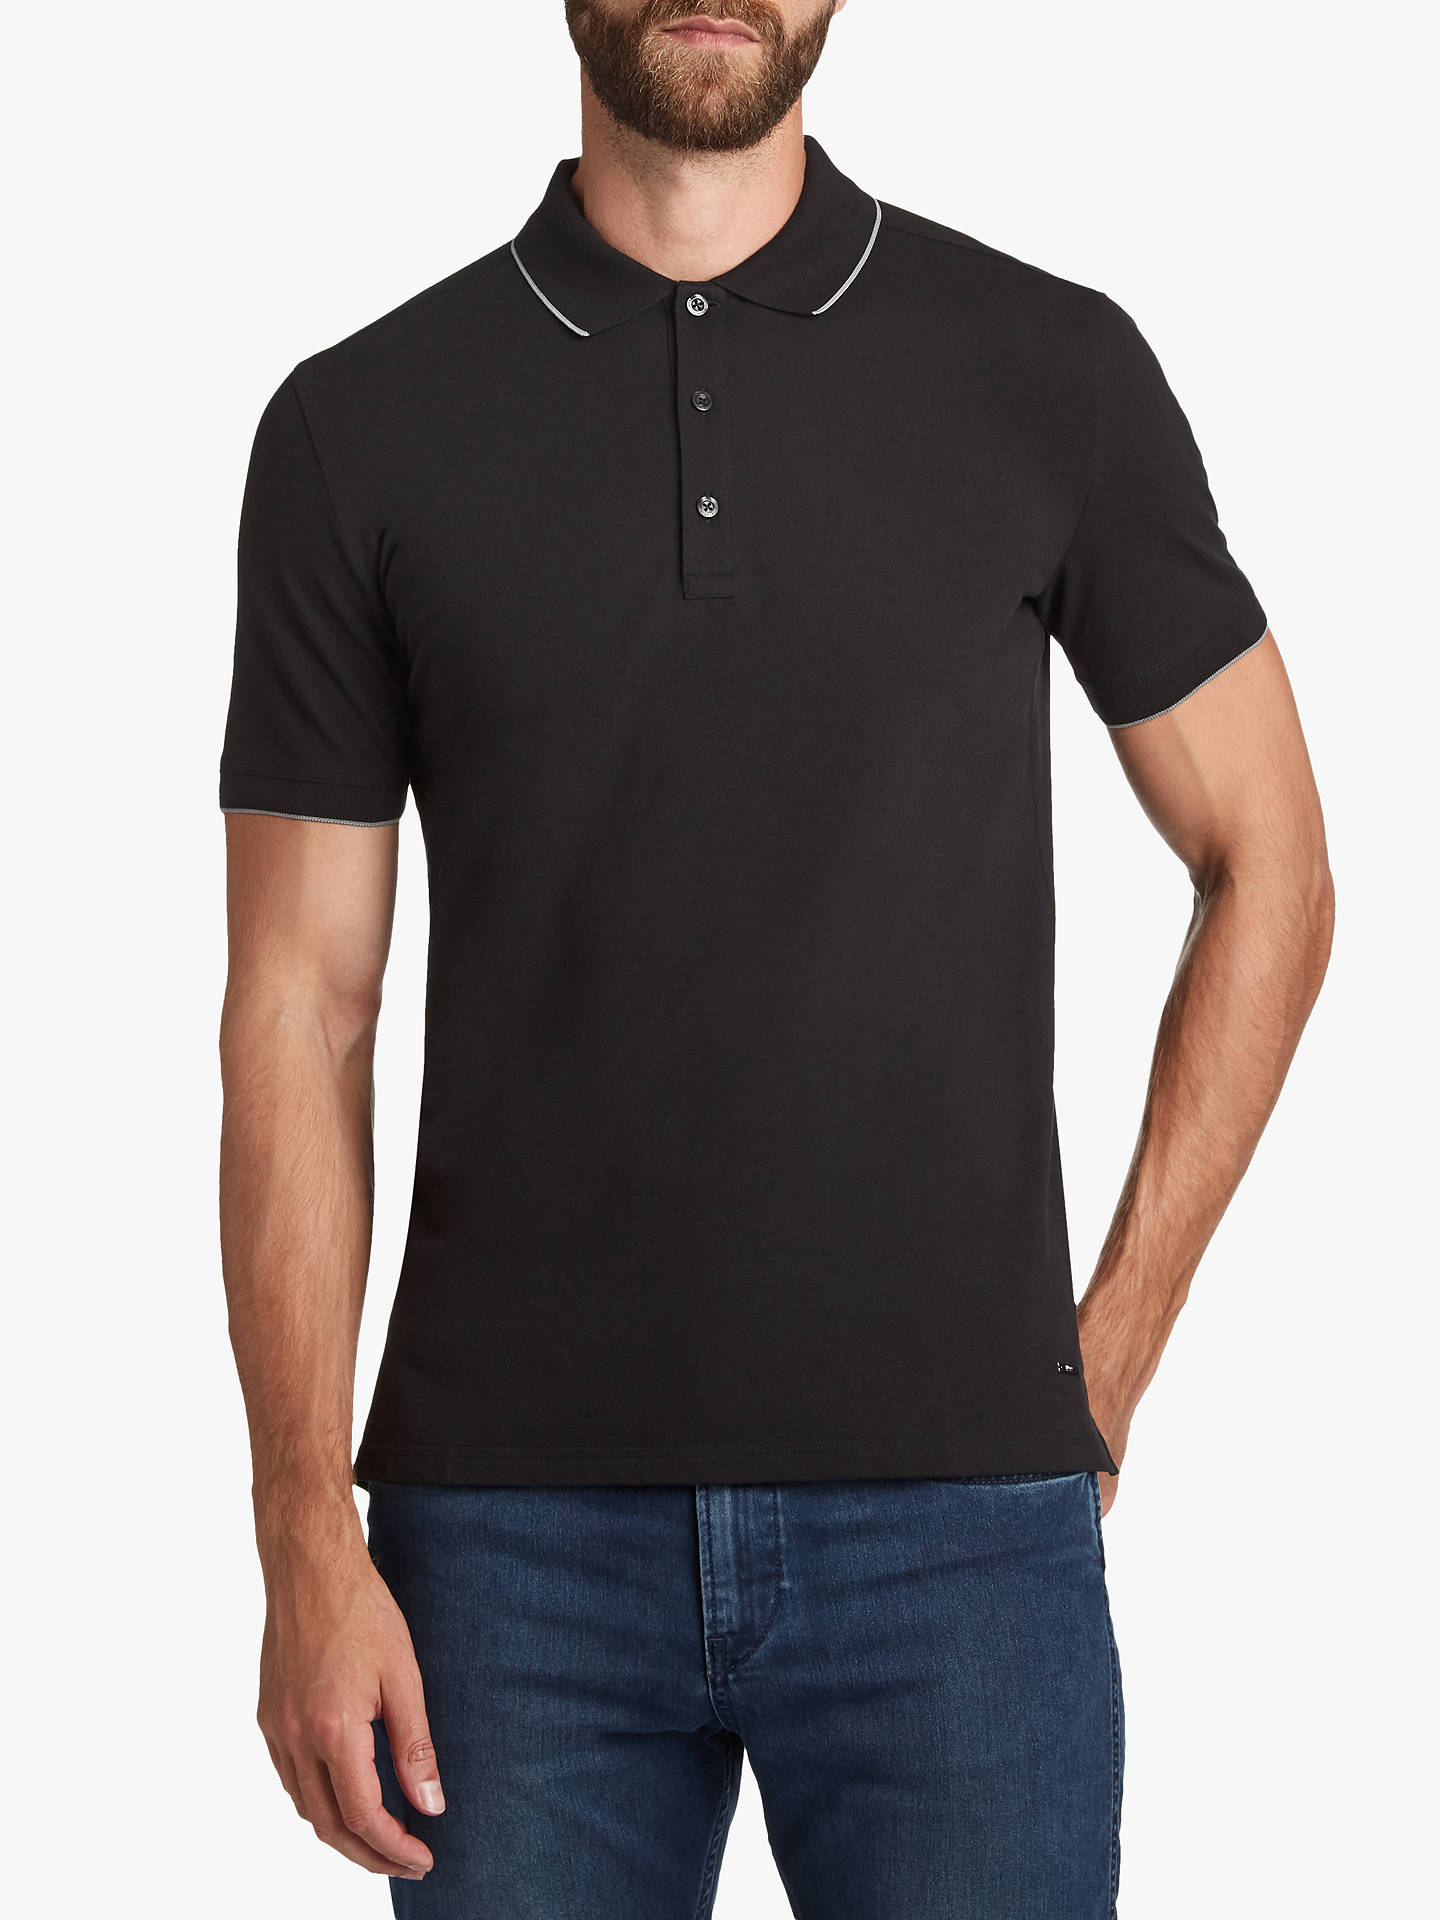 a831b3b3f Buy HUGO by Hugo Boss Dinoso Contrast Tipping Polo Shirt, Black, S Online  at ...